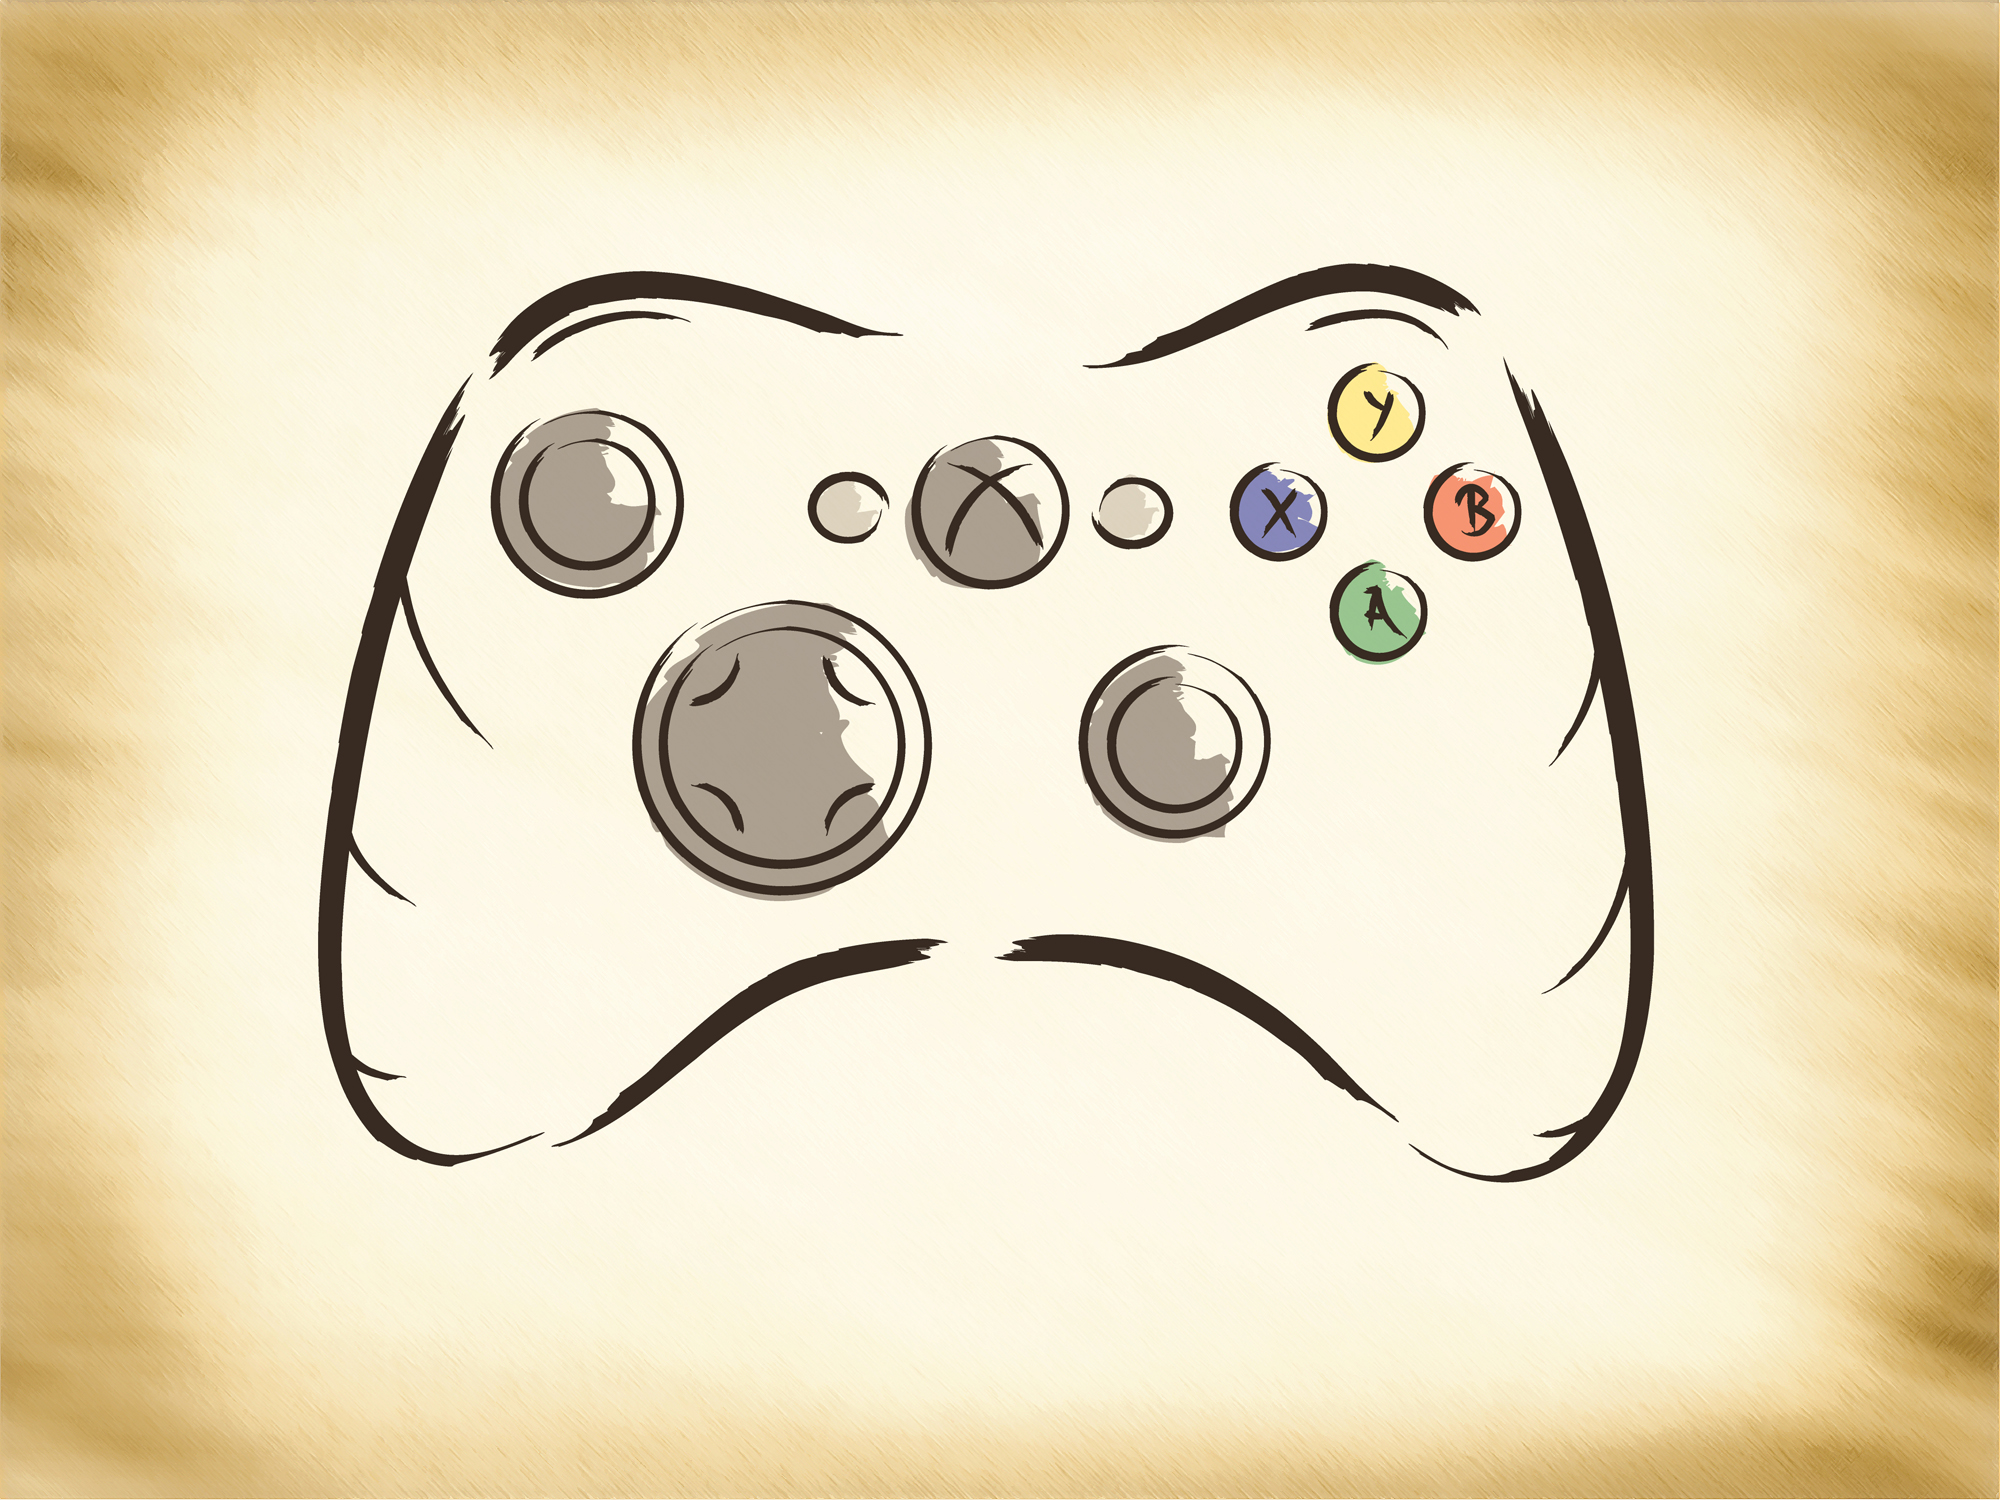 Drawn controller Google game video Google video